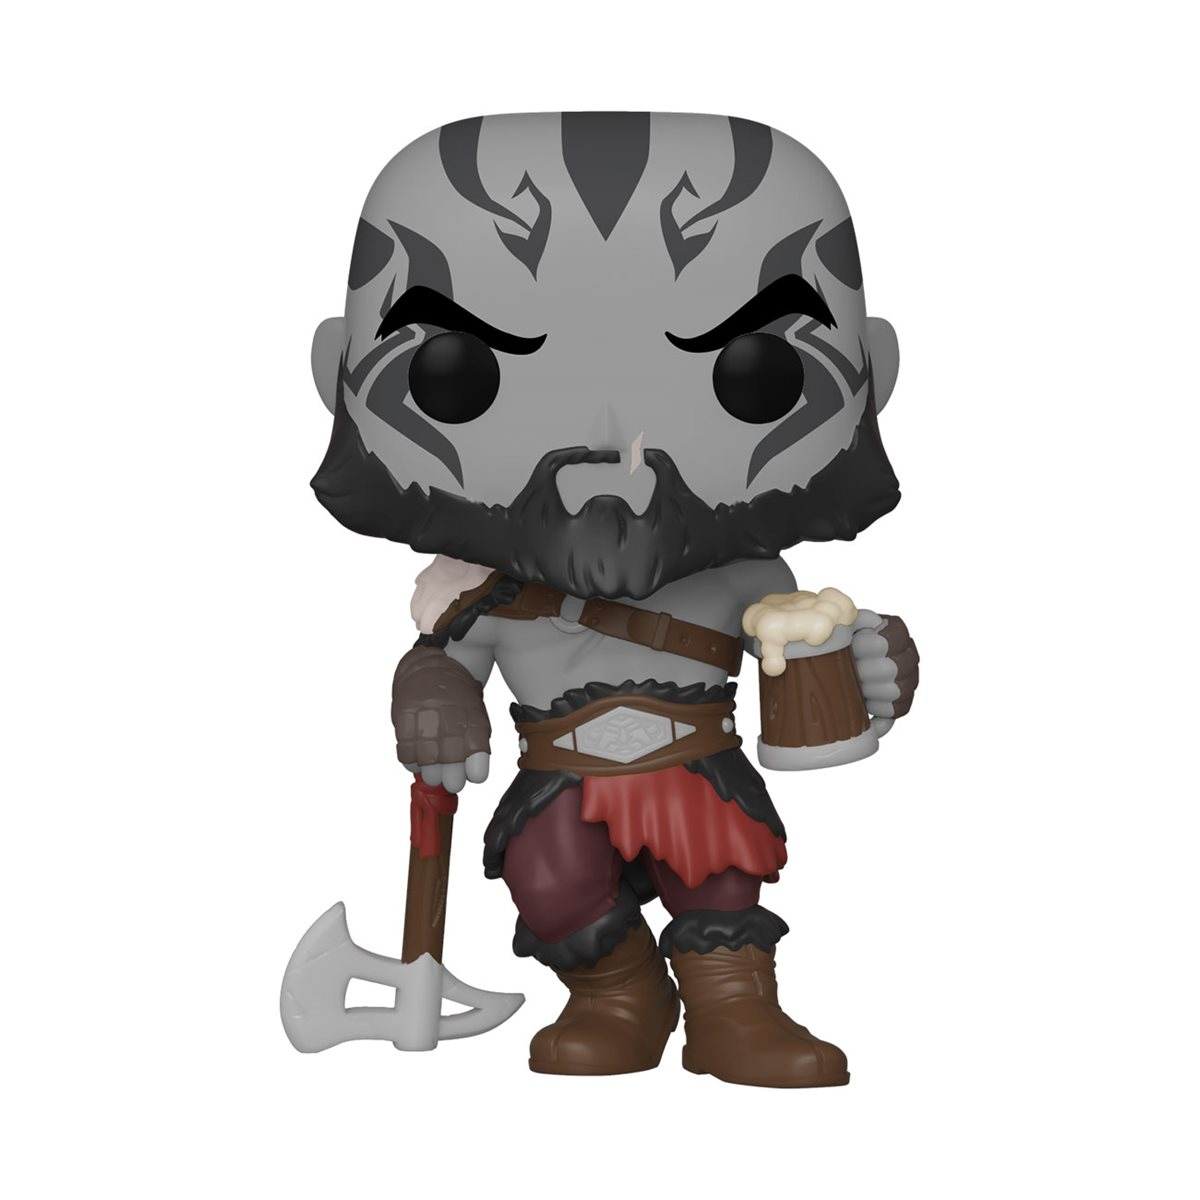 Critical Role Vox Machina Grog Strongjaw Pop Vinyl Figure Vex'ahlia dice by critical role and die hard dice. critical role vox machina grog strongjaw pop vinyl figure